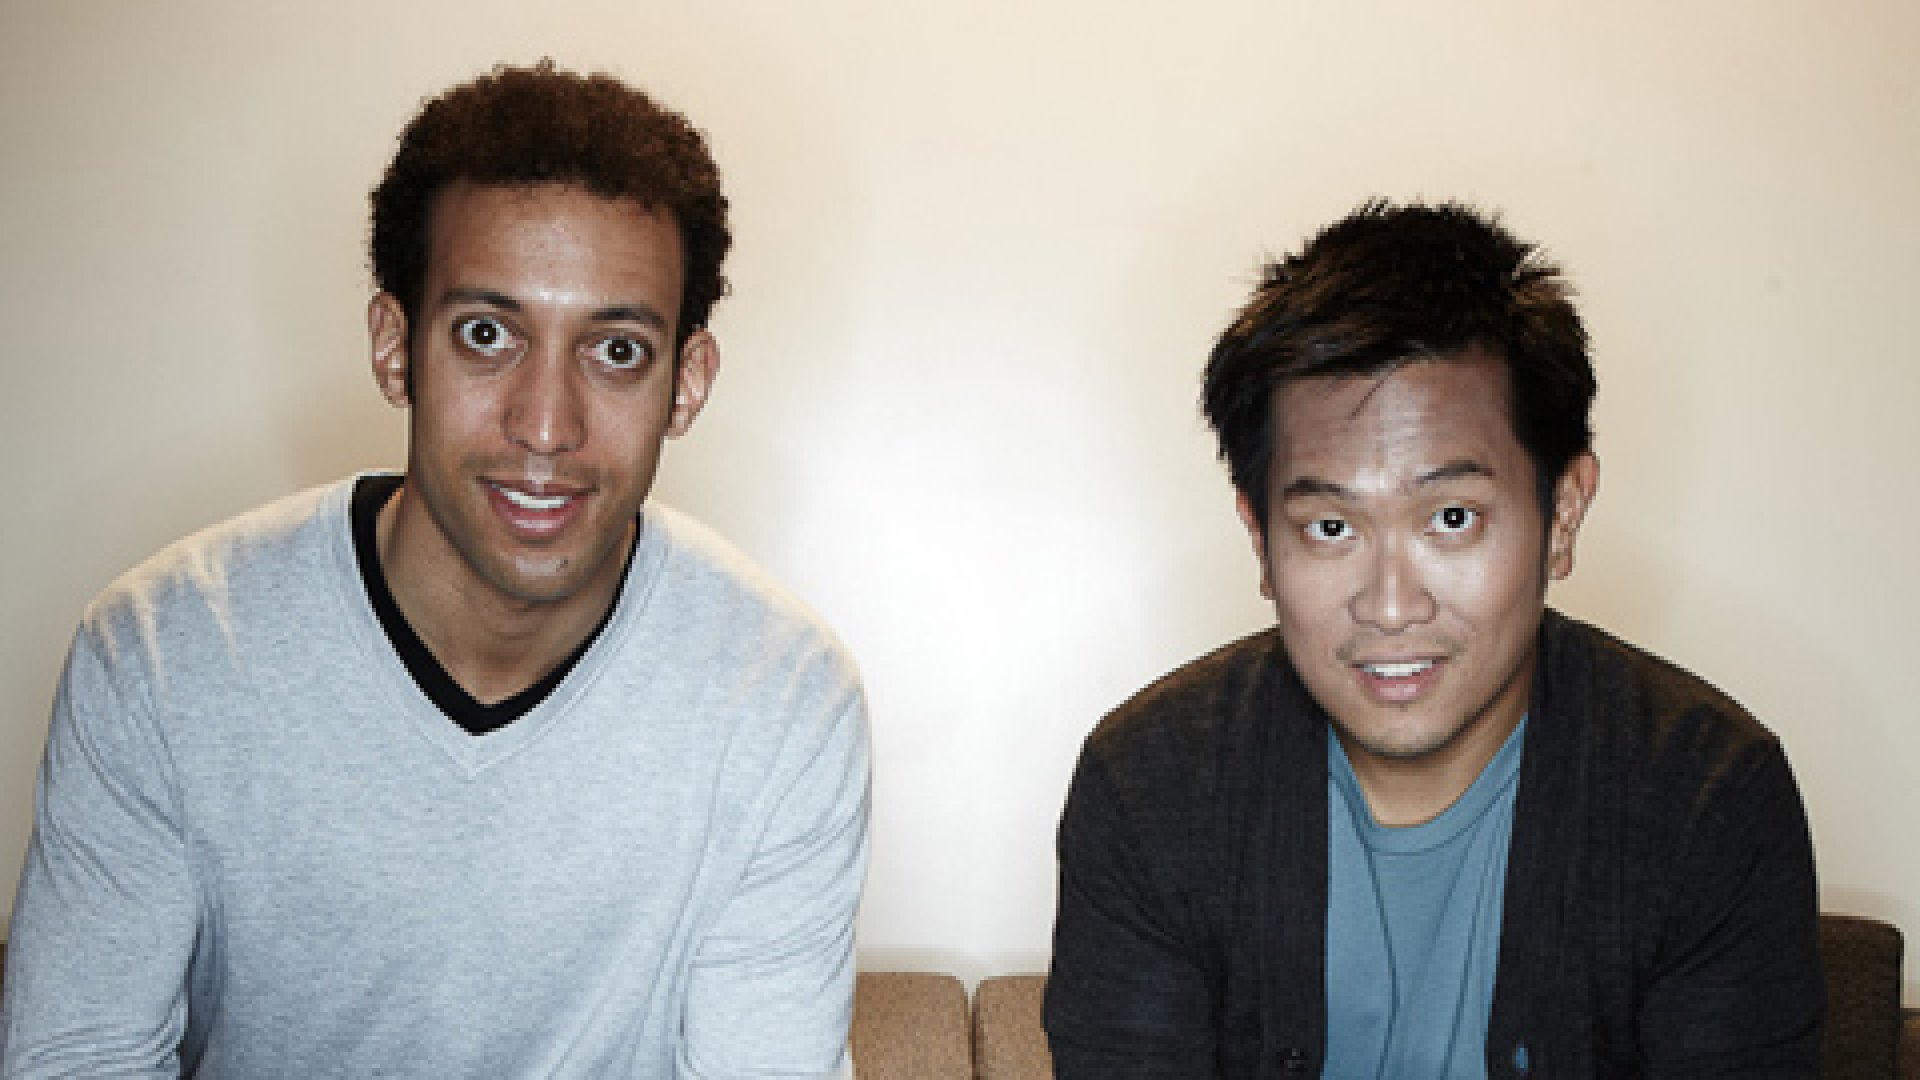 Tagged founders Johann Schleier-Smith and Greg Tseng are reinventing their social-networking site to be a place to meet new people through common interests and playing games.